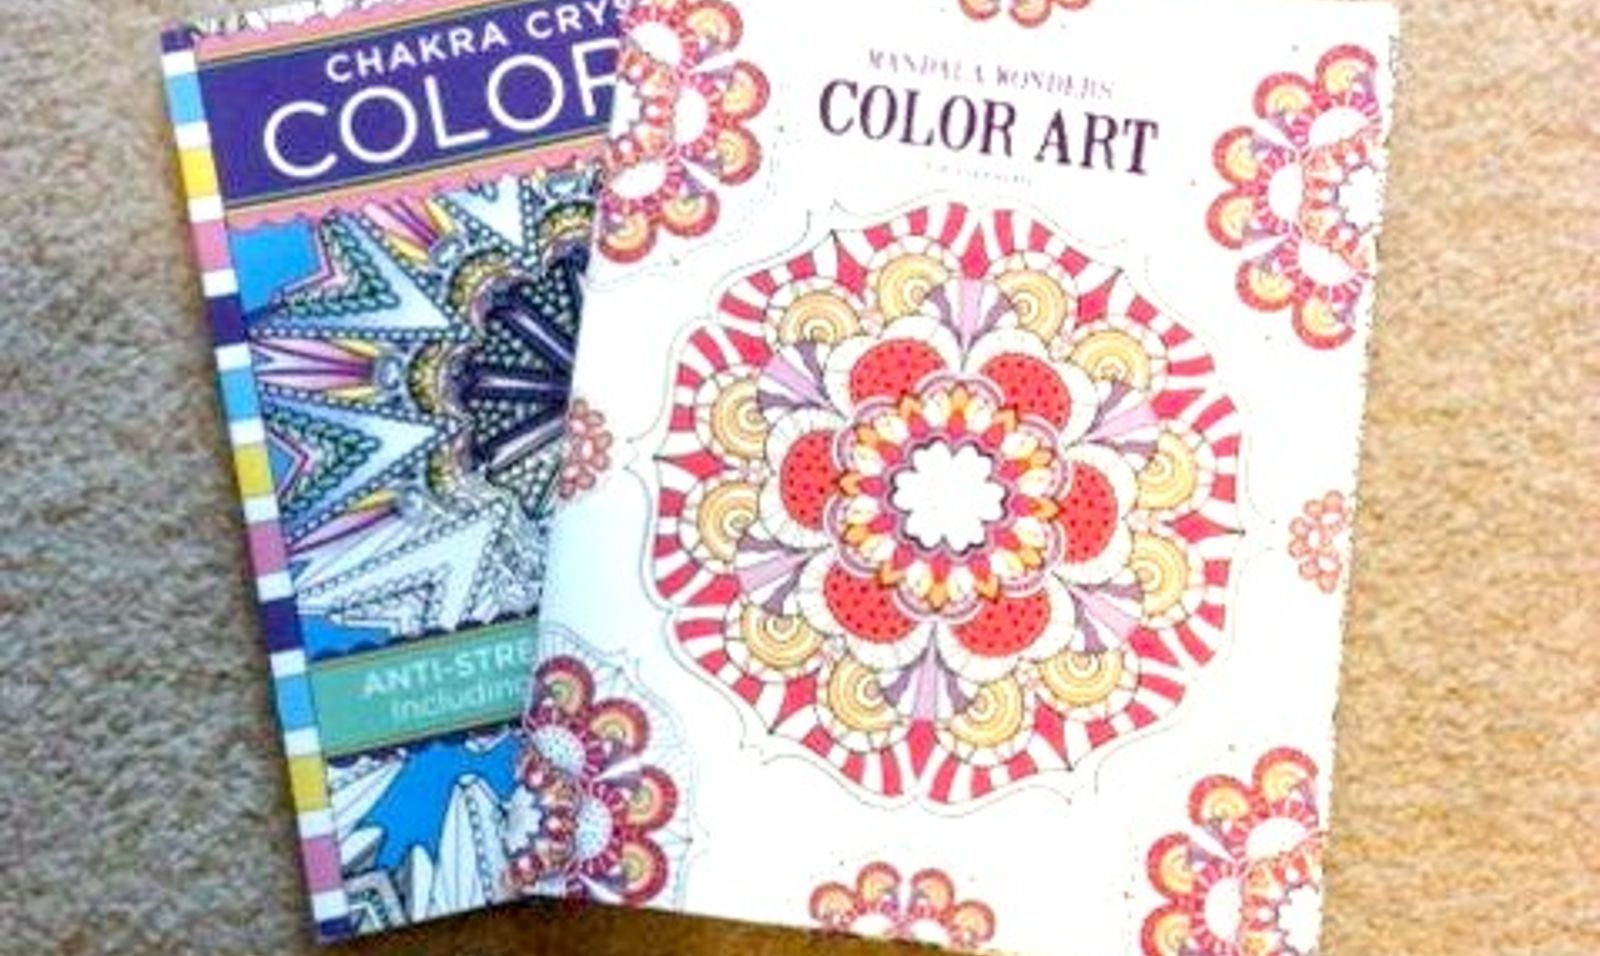 How To Fake High End Decor With Adult Coloring Books